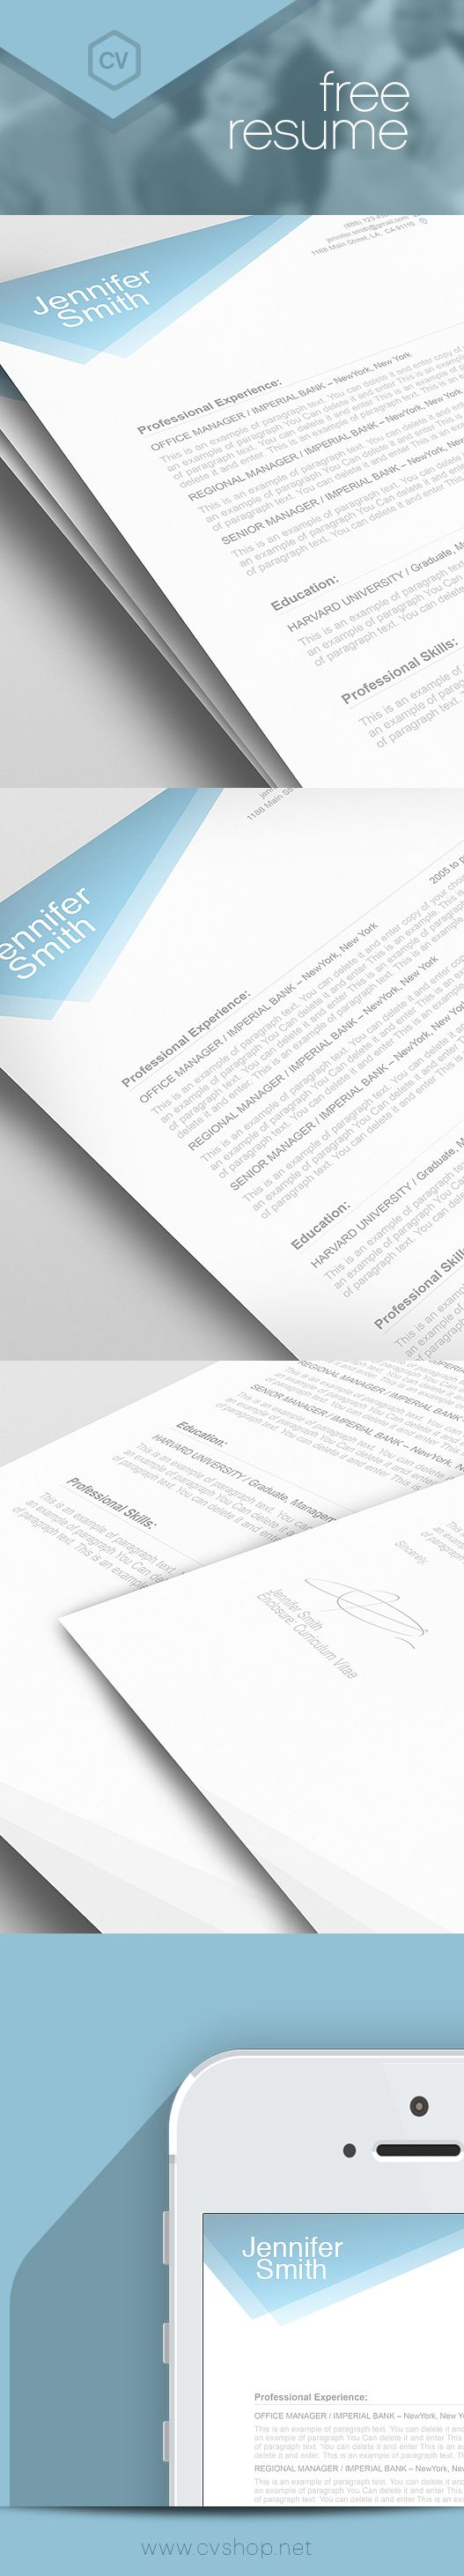 Free Resume Template 100040 14 best FREE